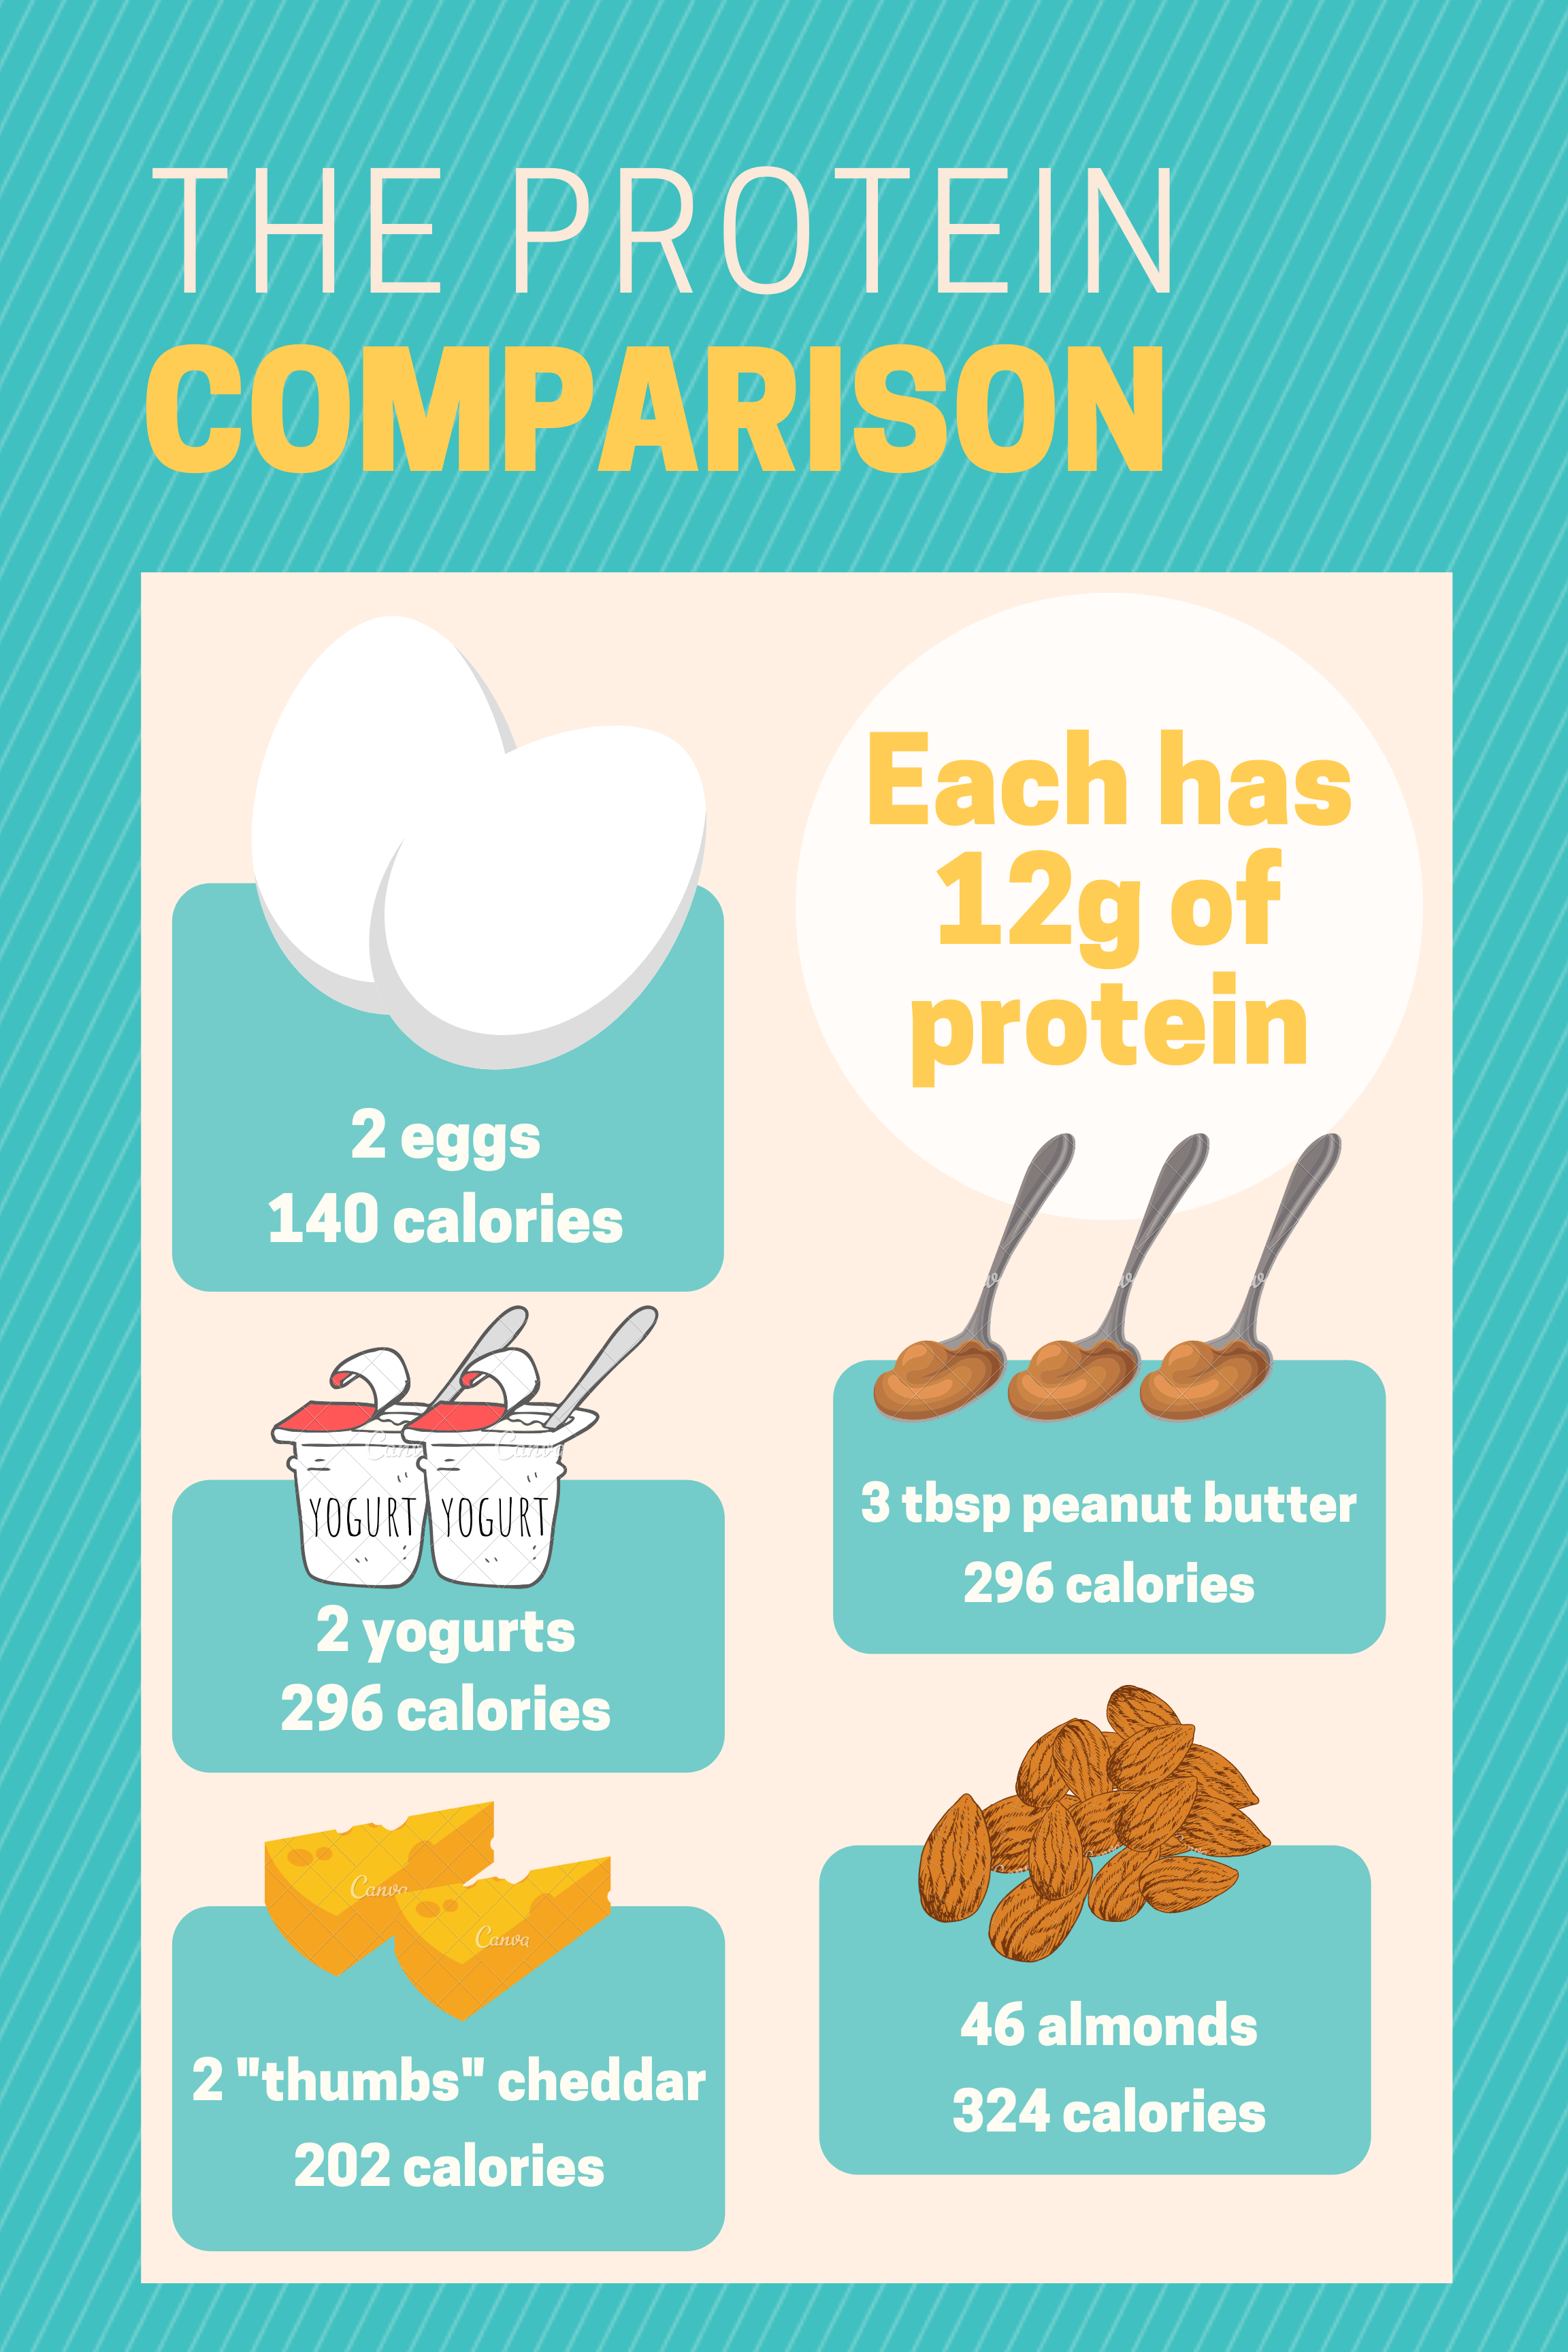 infographic of 12g of protein across various types of foods